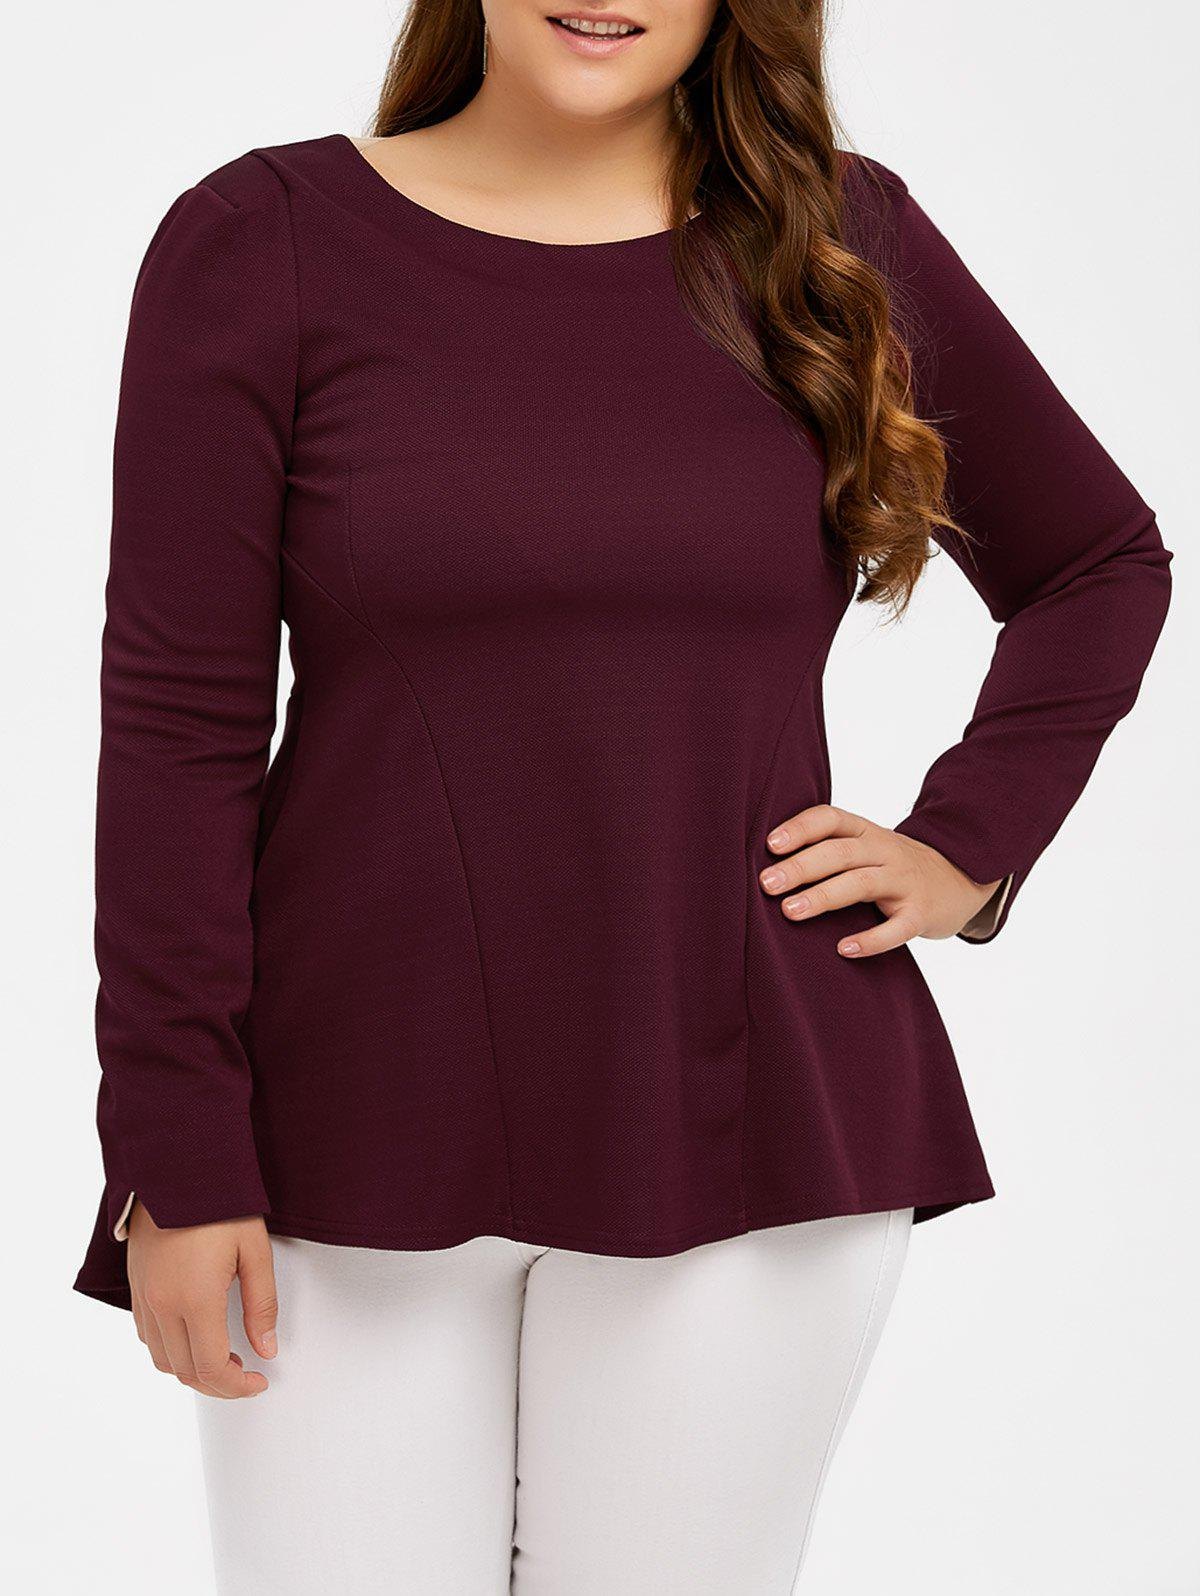 Plus Size Top 201775602